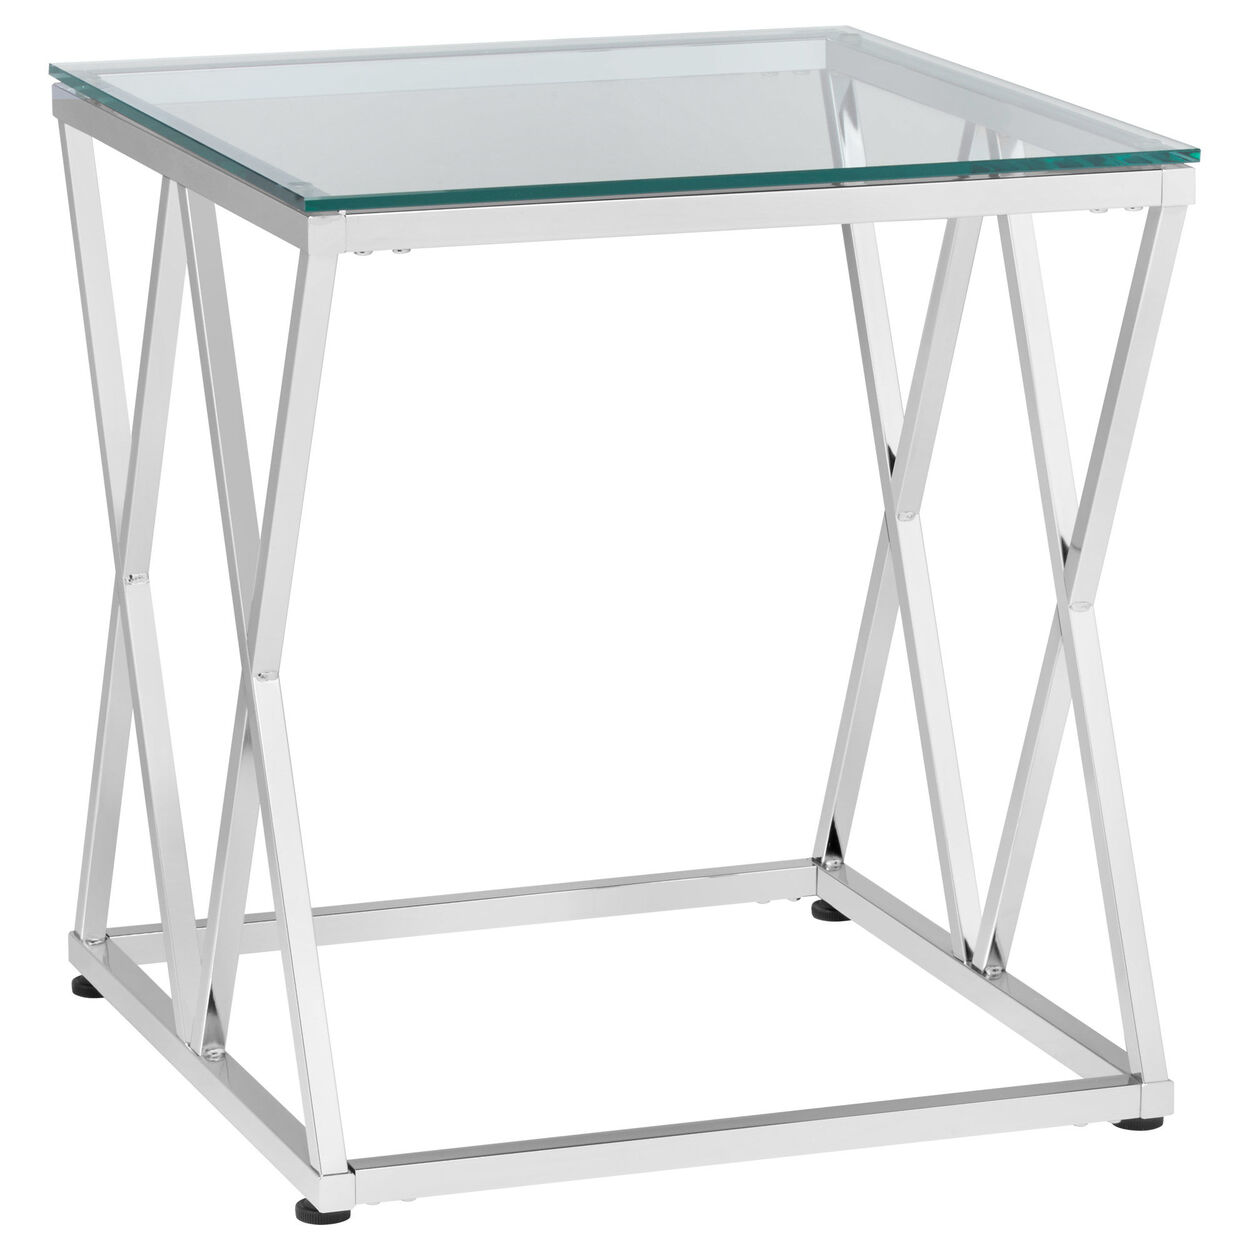 glass side table. Tempered Glass Side Table With Metal Legs D